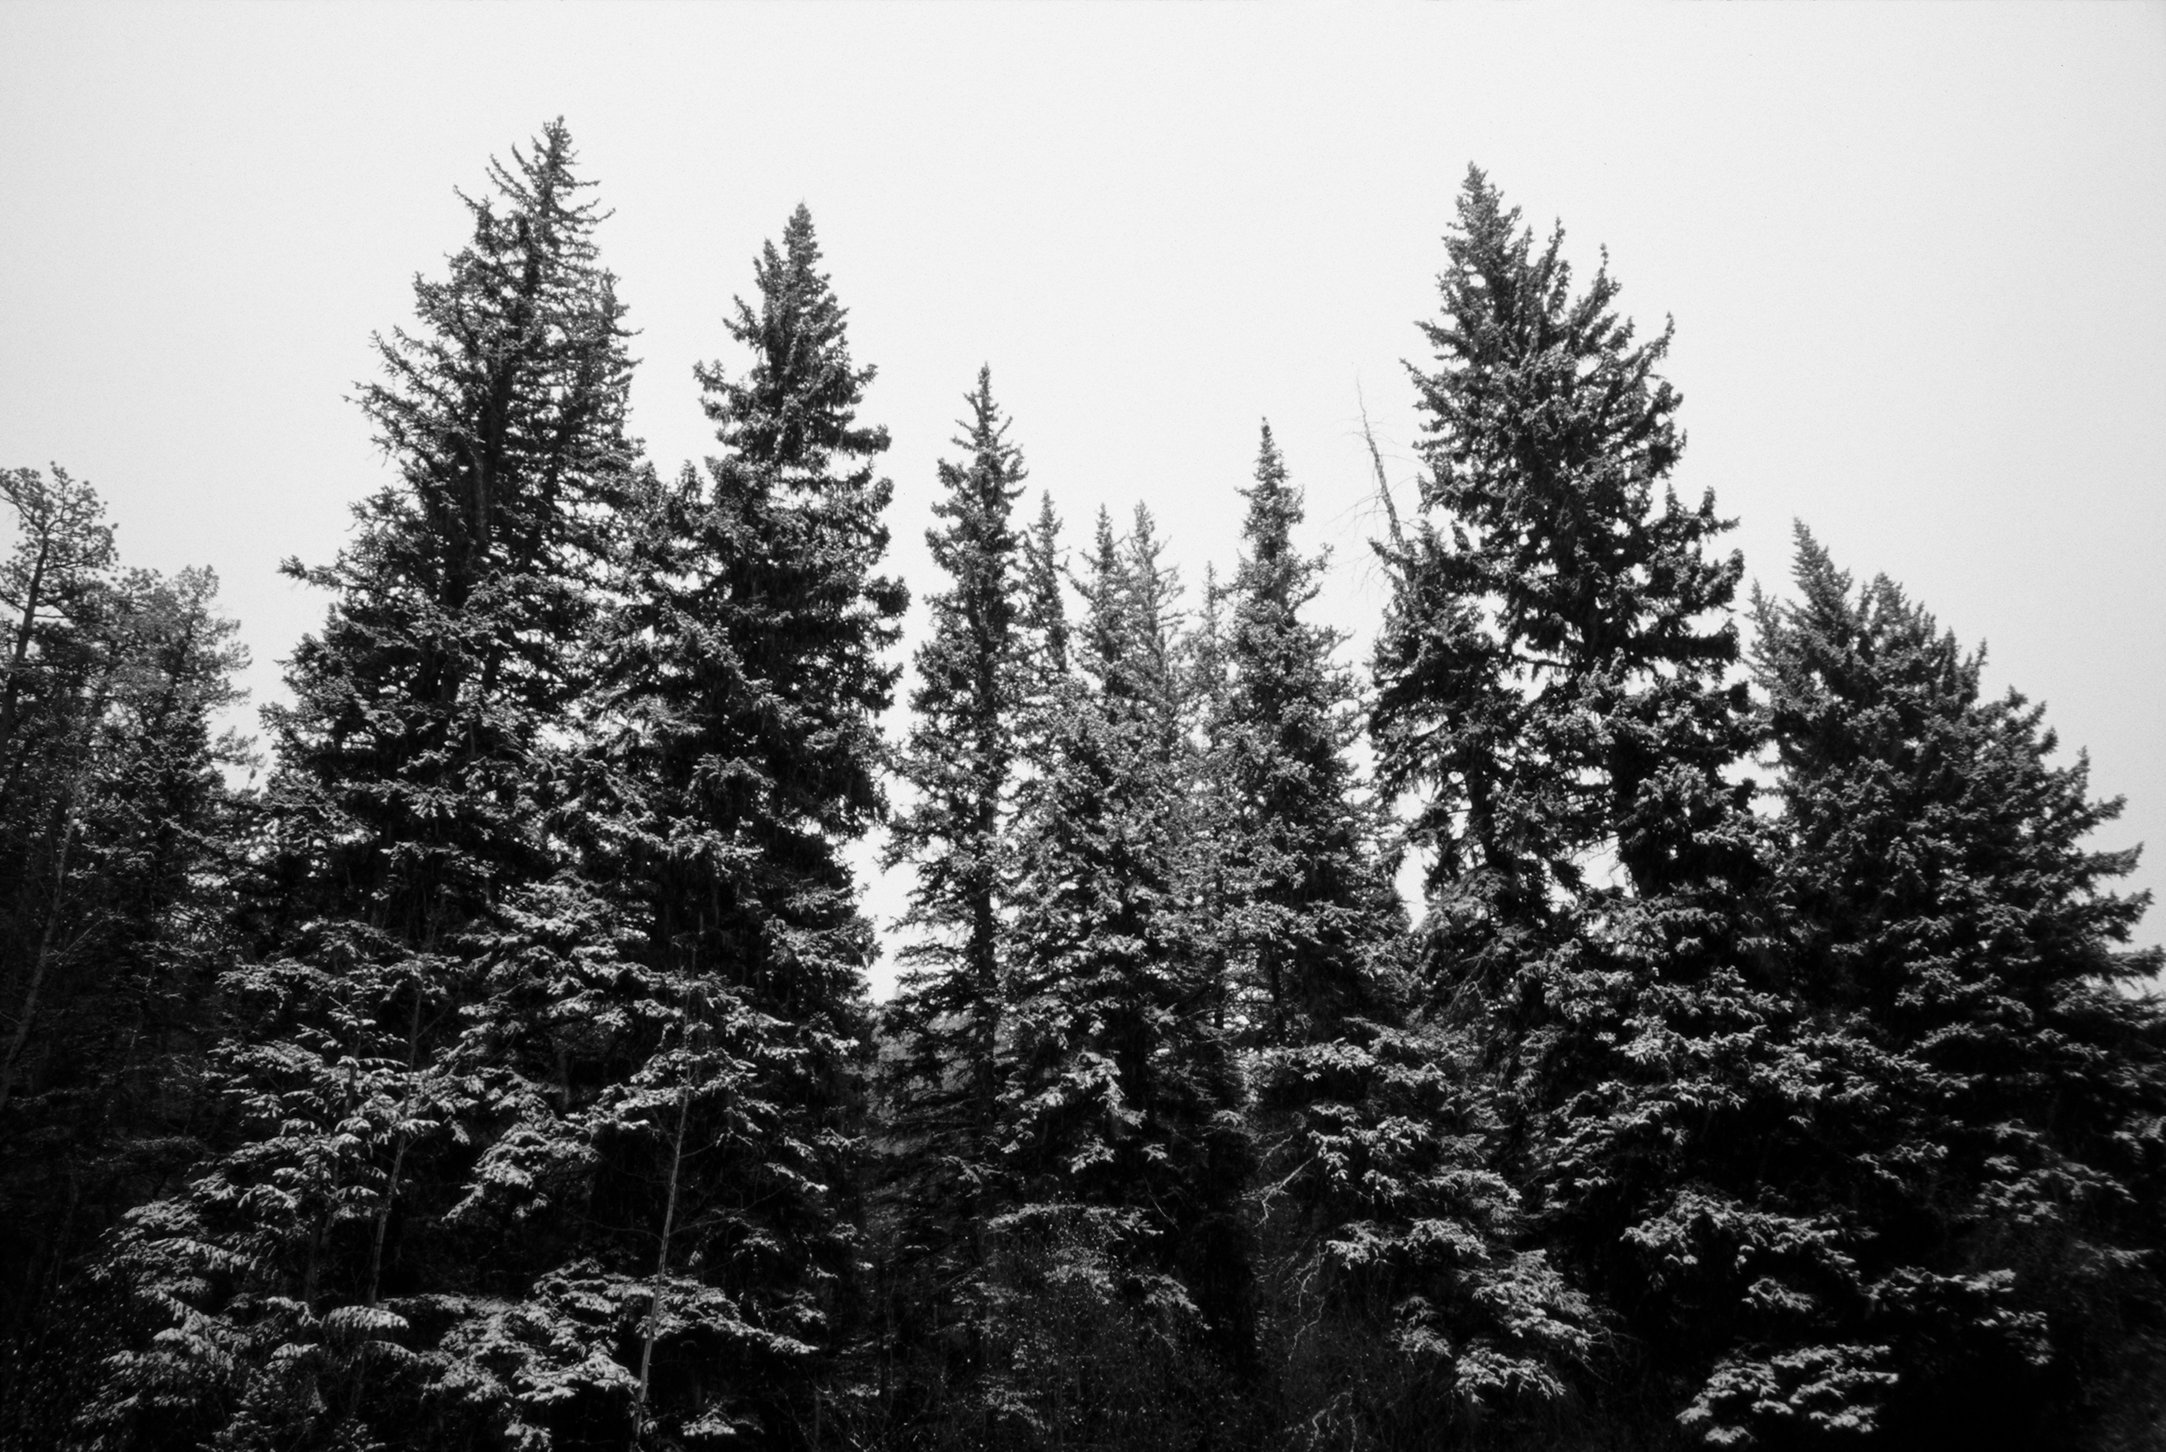 0002_Northern Rockies, Spring 2015. Scan #12.tif